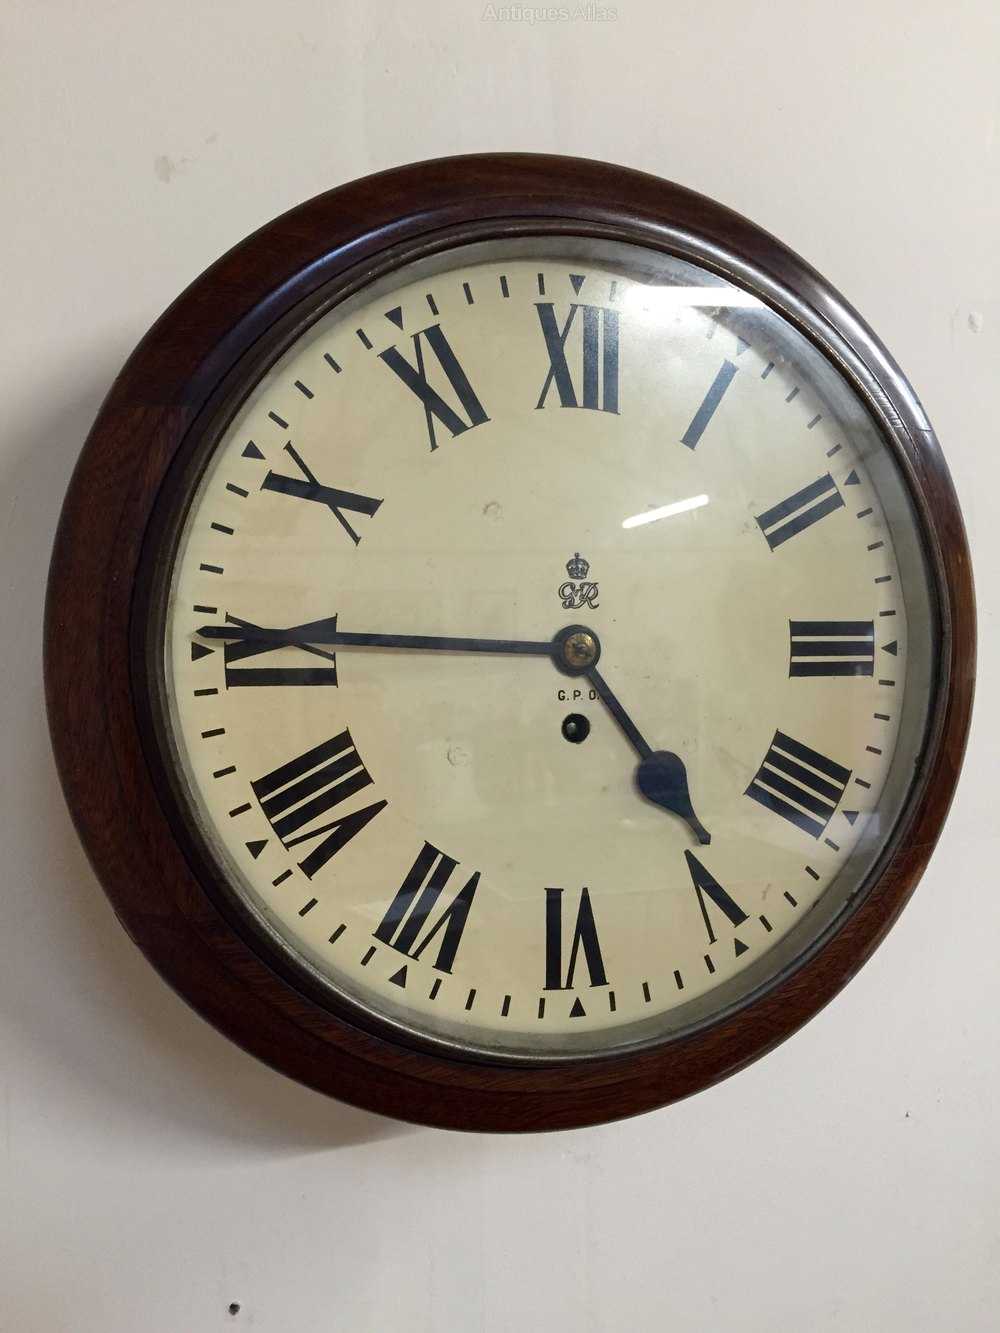 Antiques Atlas 12 Inch Gpo Fusee Wall Clock